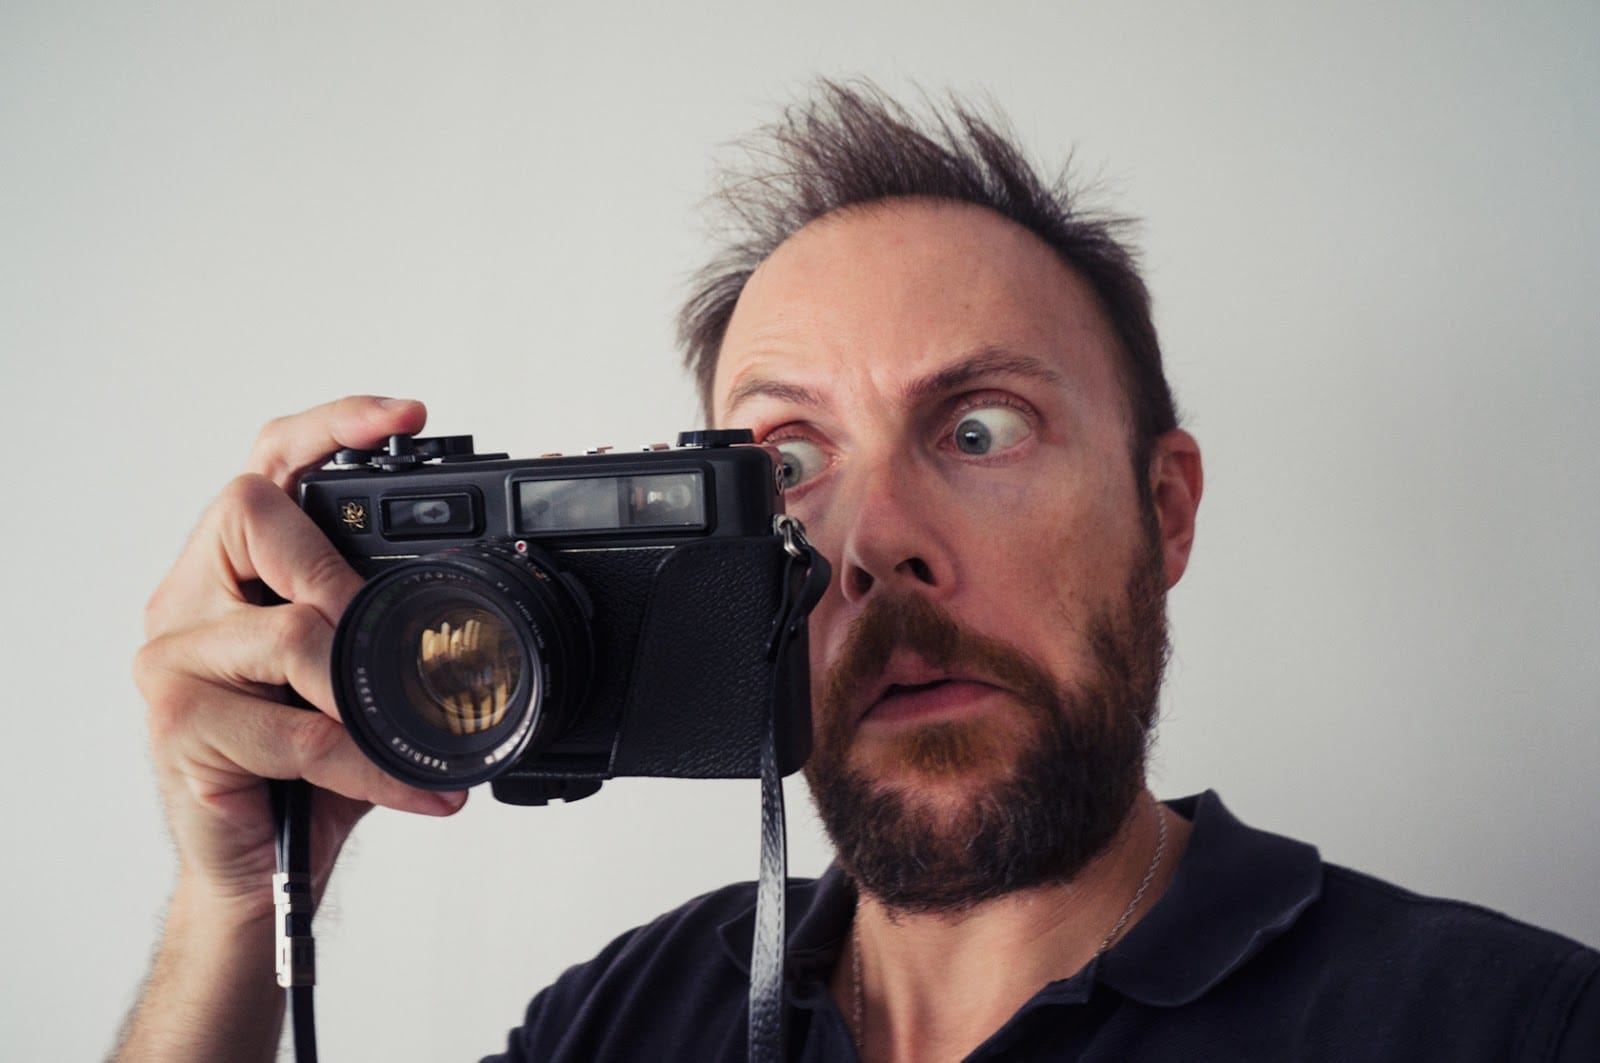 Checking into the camera viewfinder when using One Camera & One Lens for Street Photography